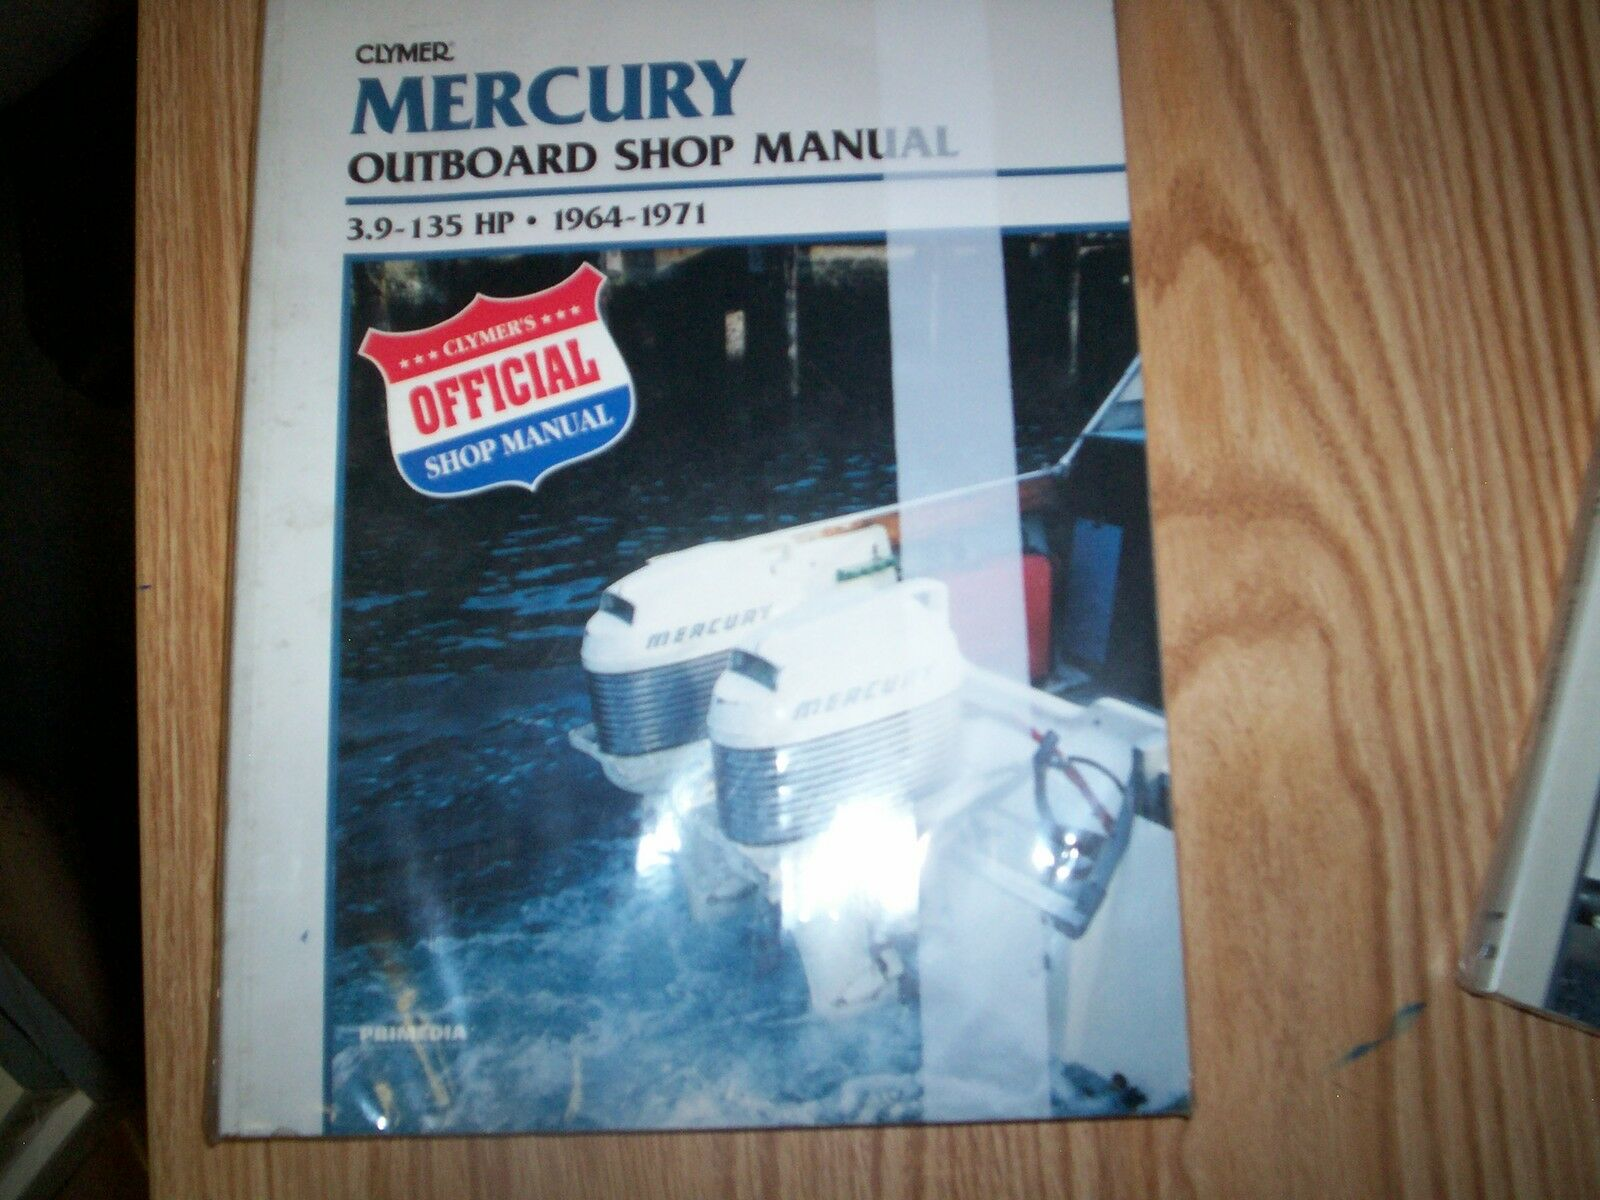 Clymer Mercury Outboard Shop Manual 3.9-135hp 1964-1971 B719 1 of 1Only 3  available ...